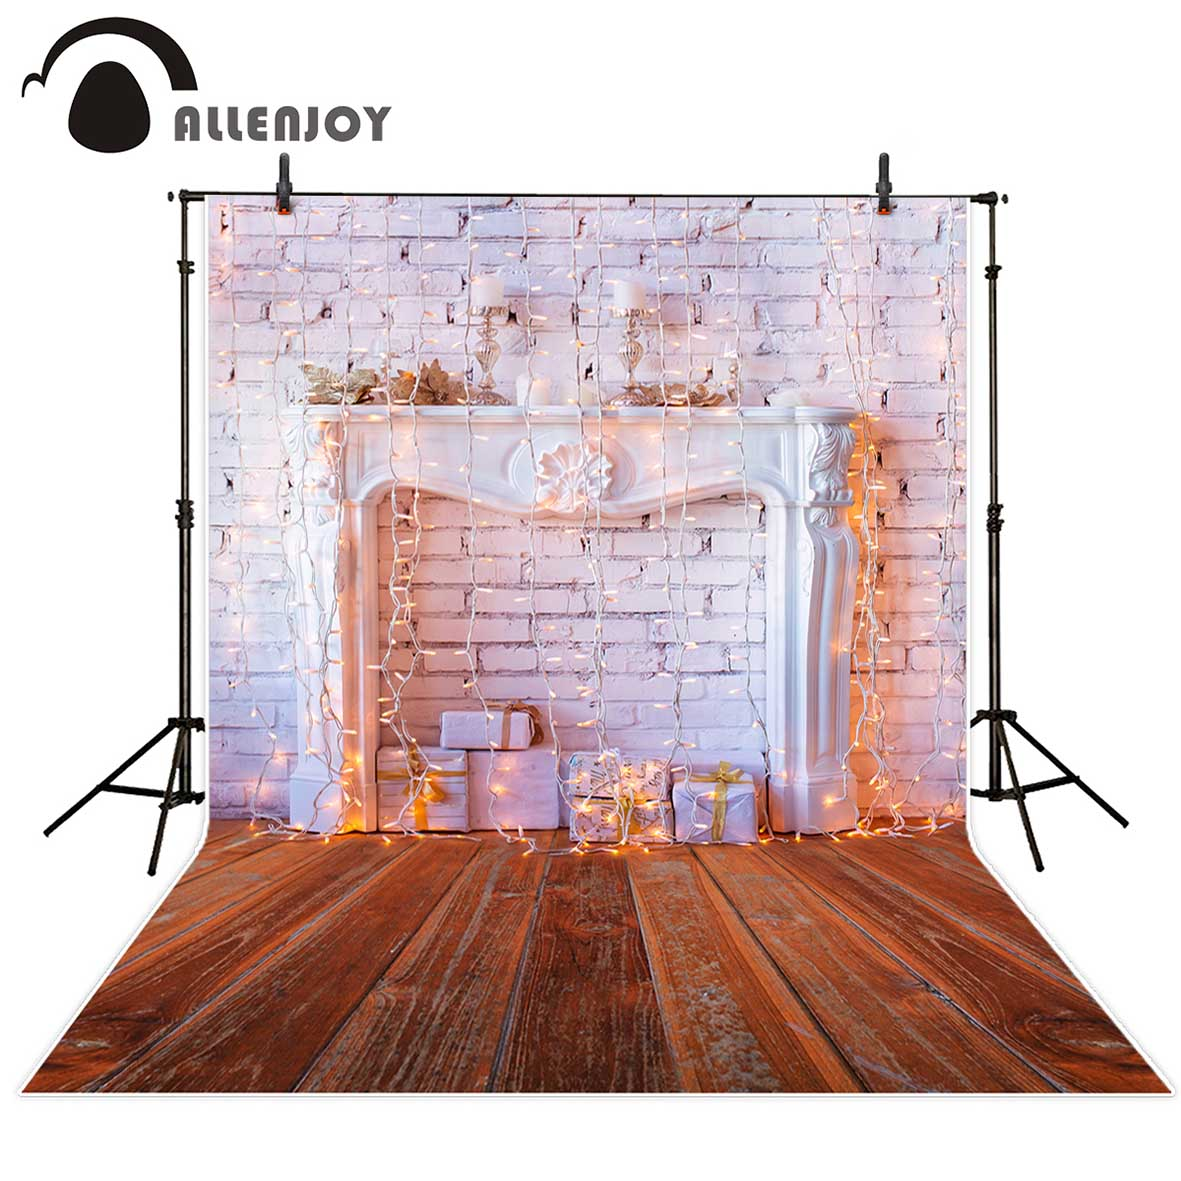 Allenjoy christmas photography backdrops Christmas background gifts white brick wall wooden floor bulbs table for baby for kids гель la roche posay effaclar duo[ ] unifiant